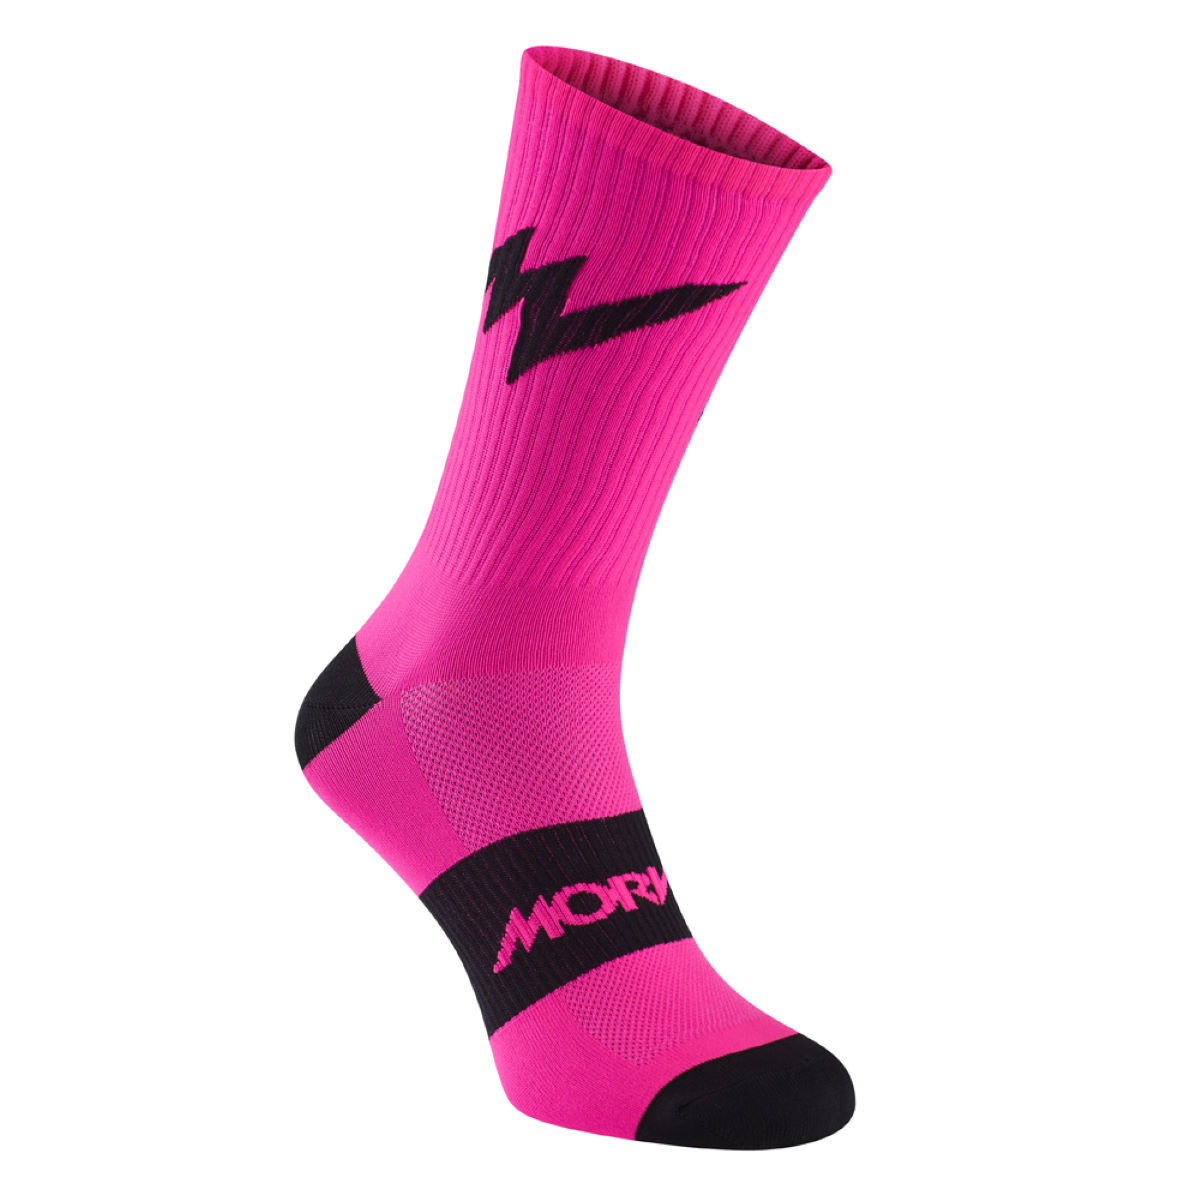 Image of Chaussettes Morvelo Series - L/XL Rose | Chaussettes